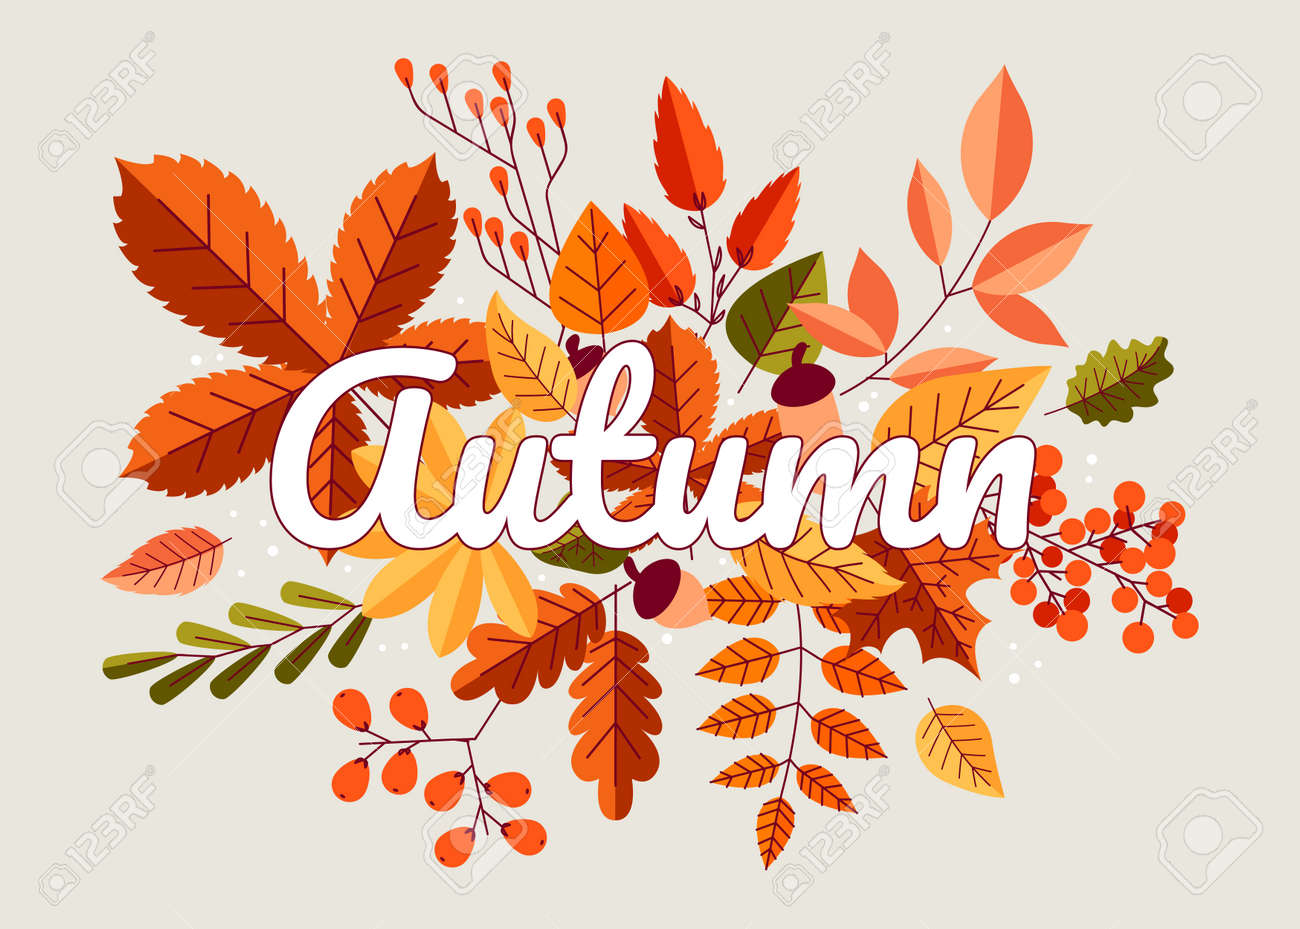 Autumn background. Fall composition with yellow orange and red forest leaves, maple oak and chestnut trees foliage. Cartoon autumn wallpaper, poster or card, vector isolated illustration - 173374326